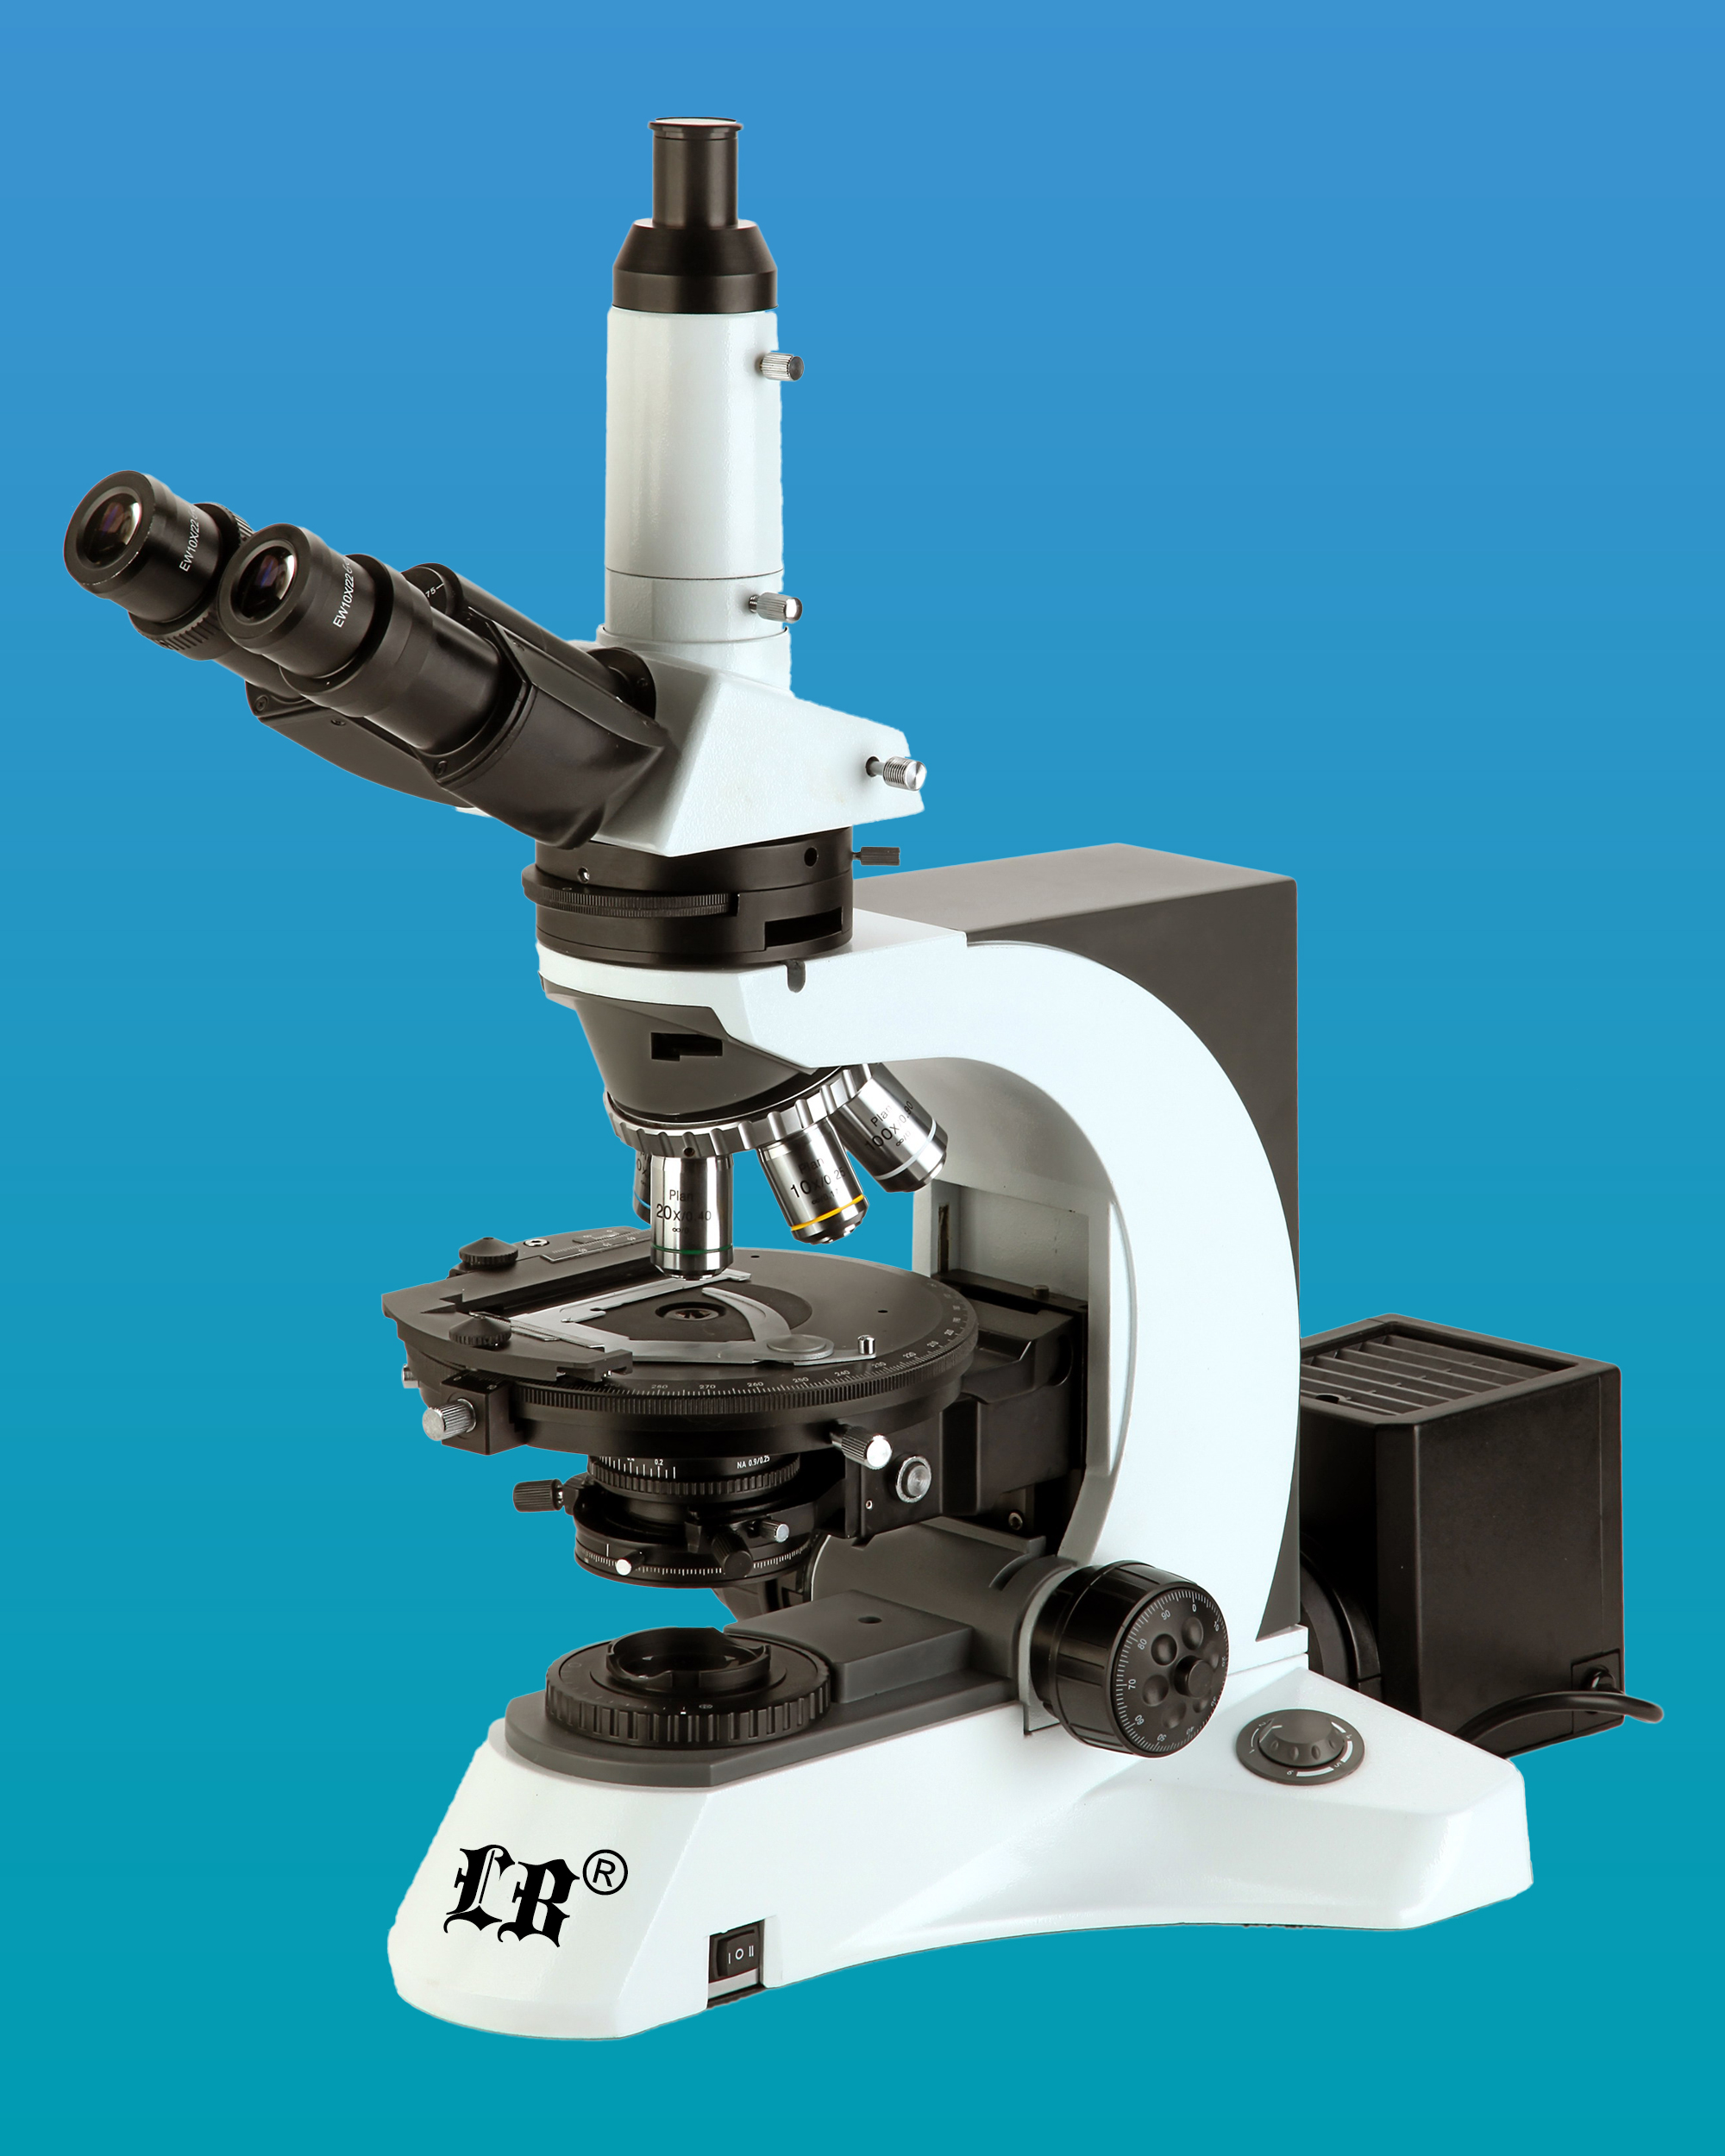 [LB-592] Polarizing Trinocular Microscope w/ Infinite Optical System